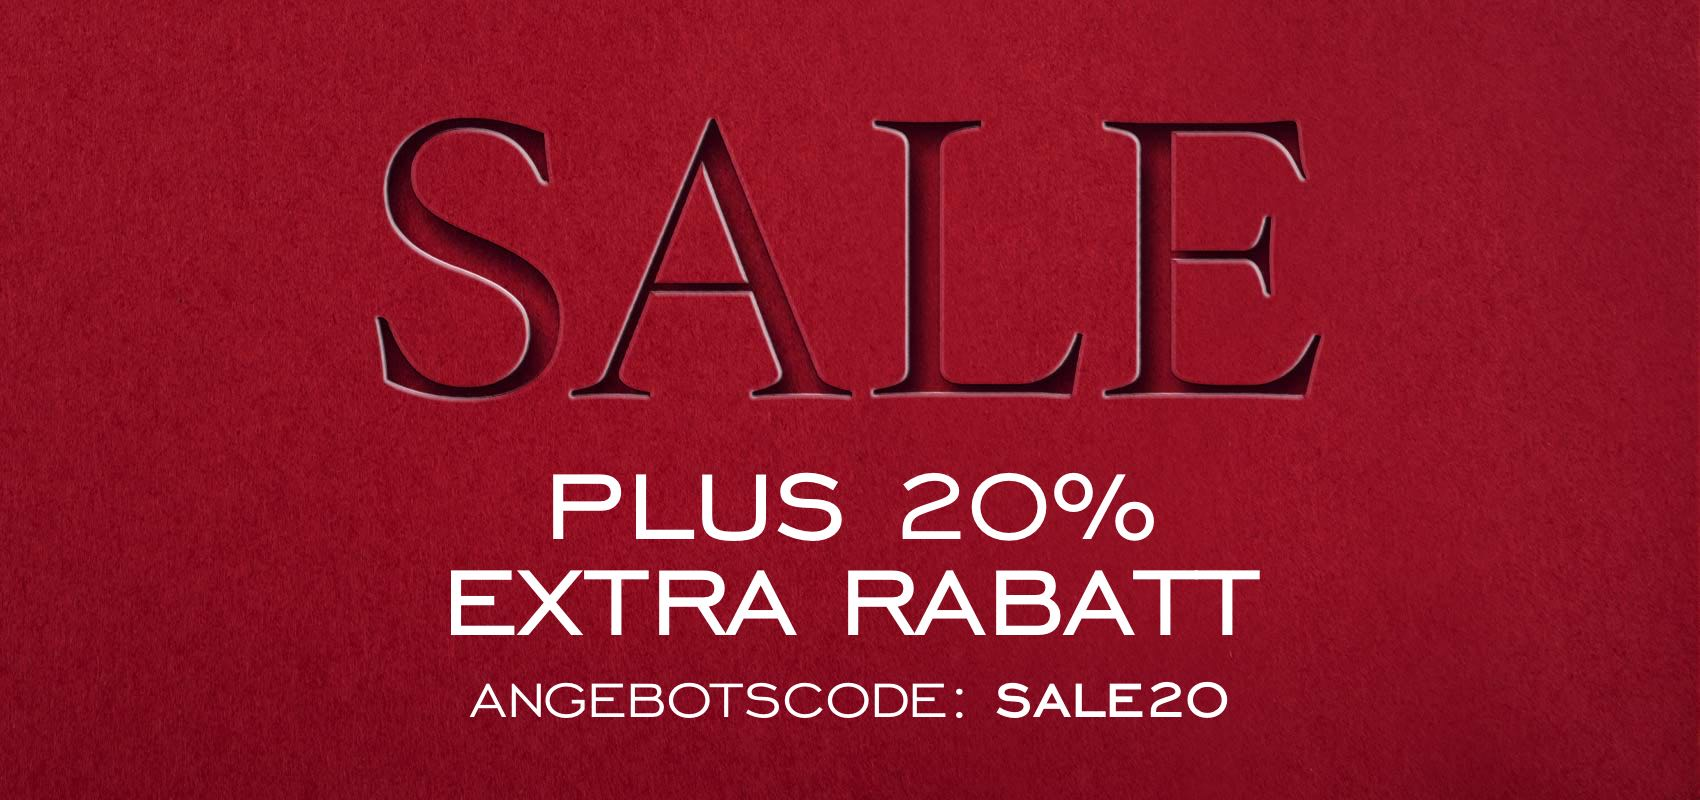 Sale plus 20% extra rabatt angebotscode: SALE20